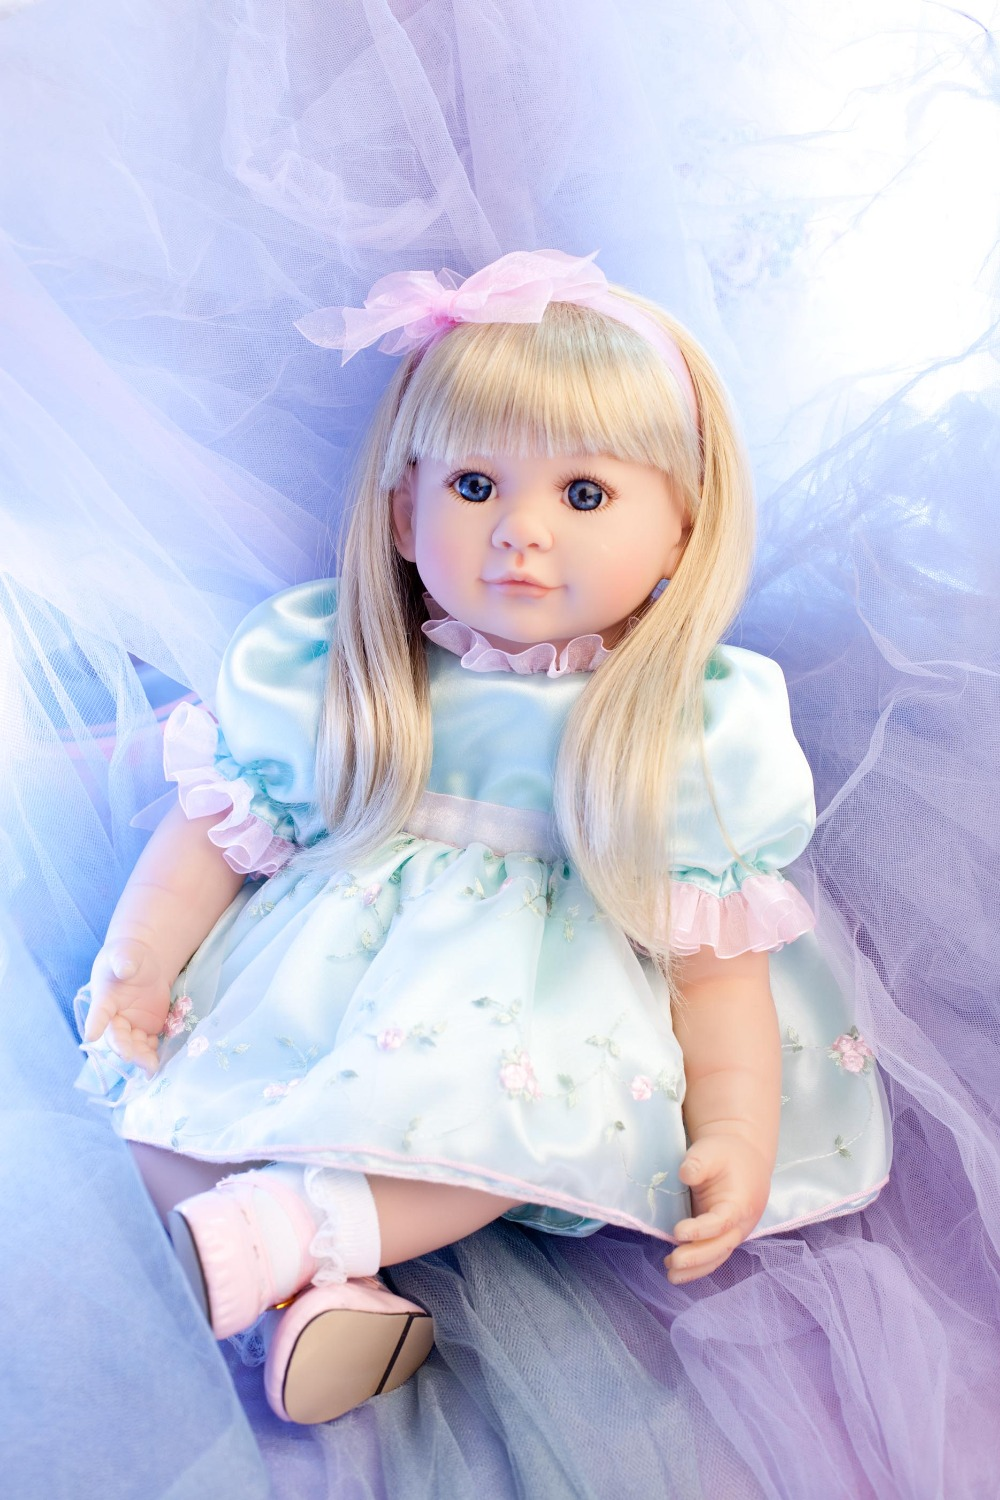 50cm Silicone Vinyl Reborn Baby Like Real Doll  20inch Toddler Girl Babies Toys Girls Brinquedos Birthday Gift Play House Toy 22 inch reborn baby doll vinyl like silicone girls christmas gift baby toys birthday gifts juguetes lifelike play doll